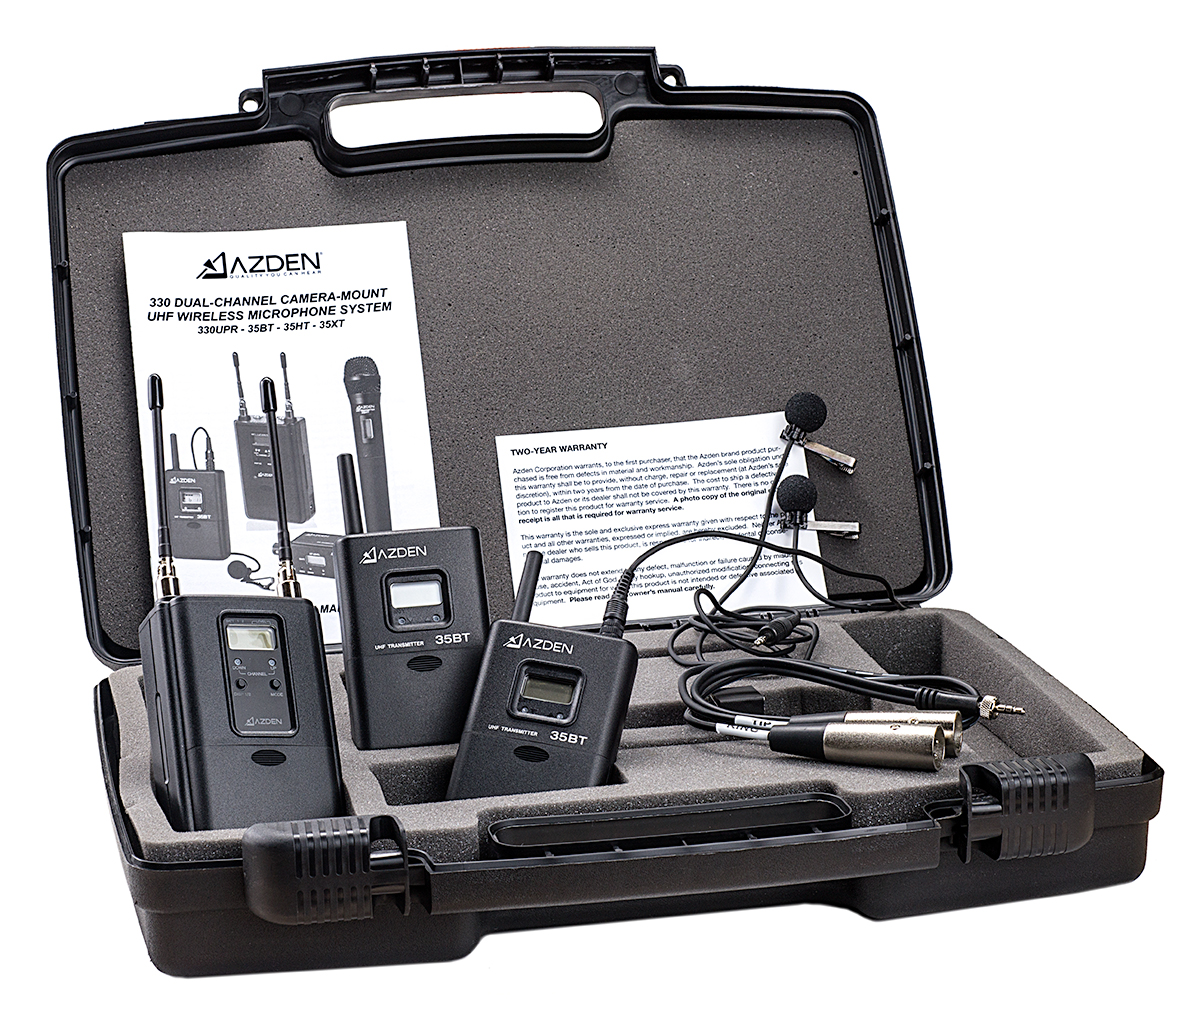 AZDEN 330LT (330 LT) ENG / Pro Wireless Dual Channel Combo Pack